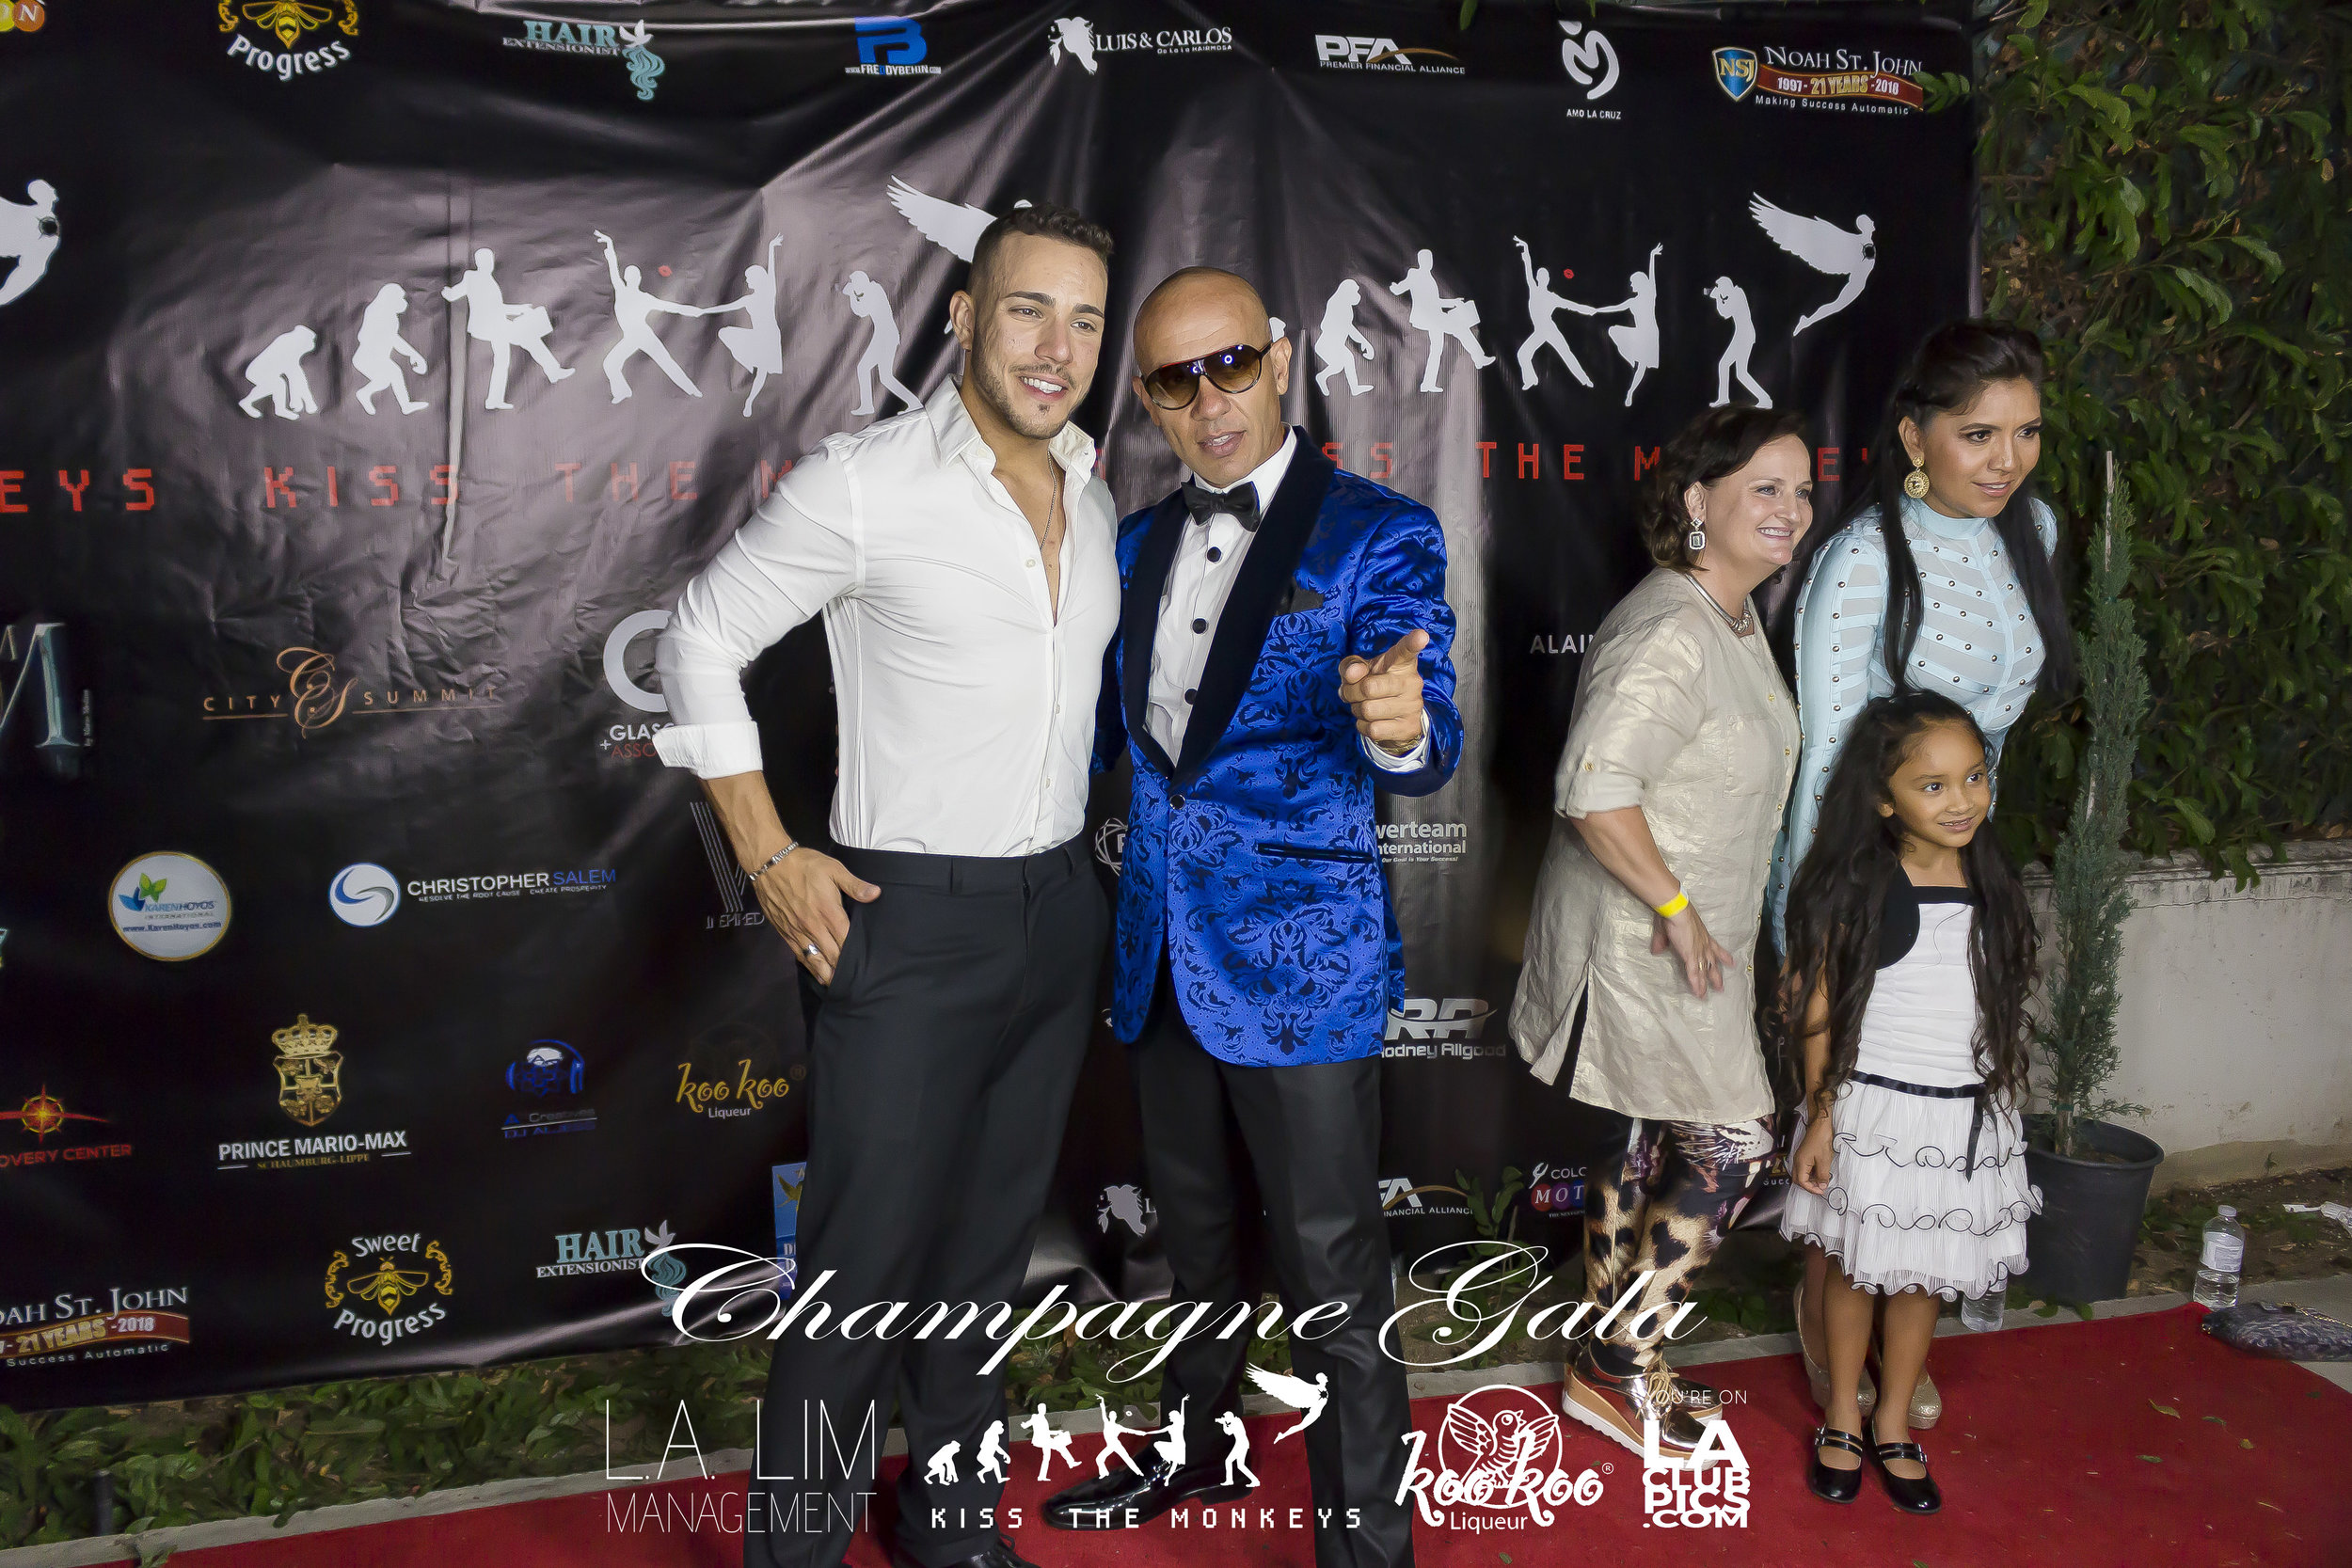 Kiss The Monkeys - Champagne Gala - 07-21-18_154.jpg